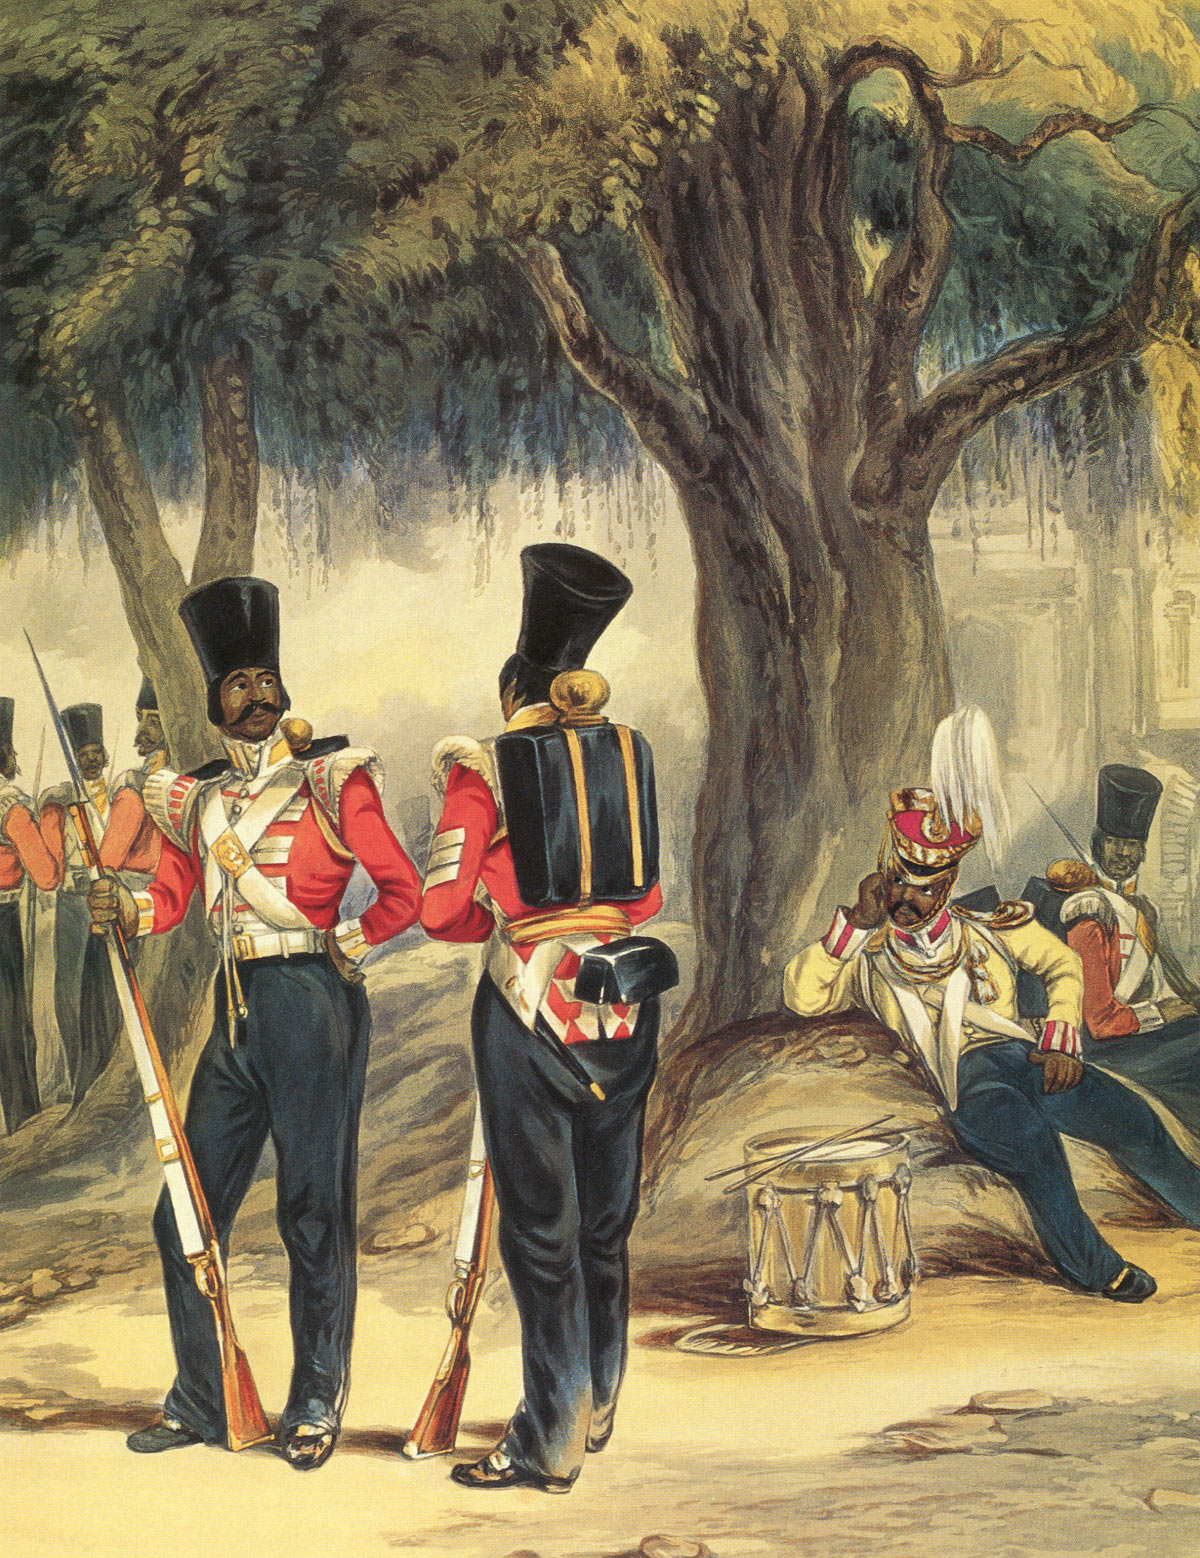 Bengal Native Infantry Regiment: Battle of Ferozeshah on 22nd December 1845 during the First Sikh War